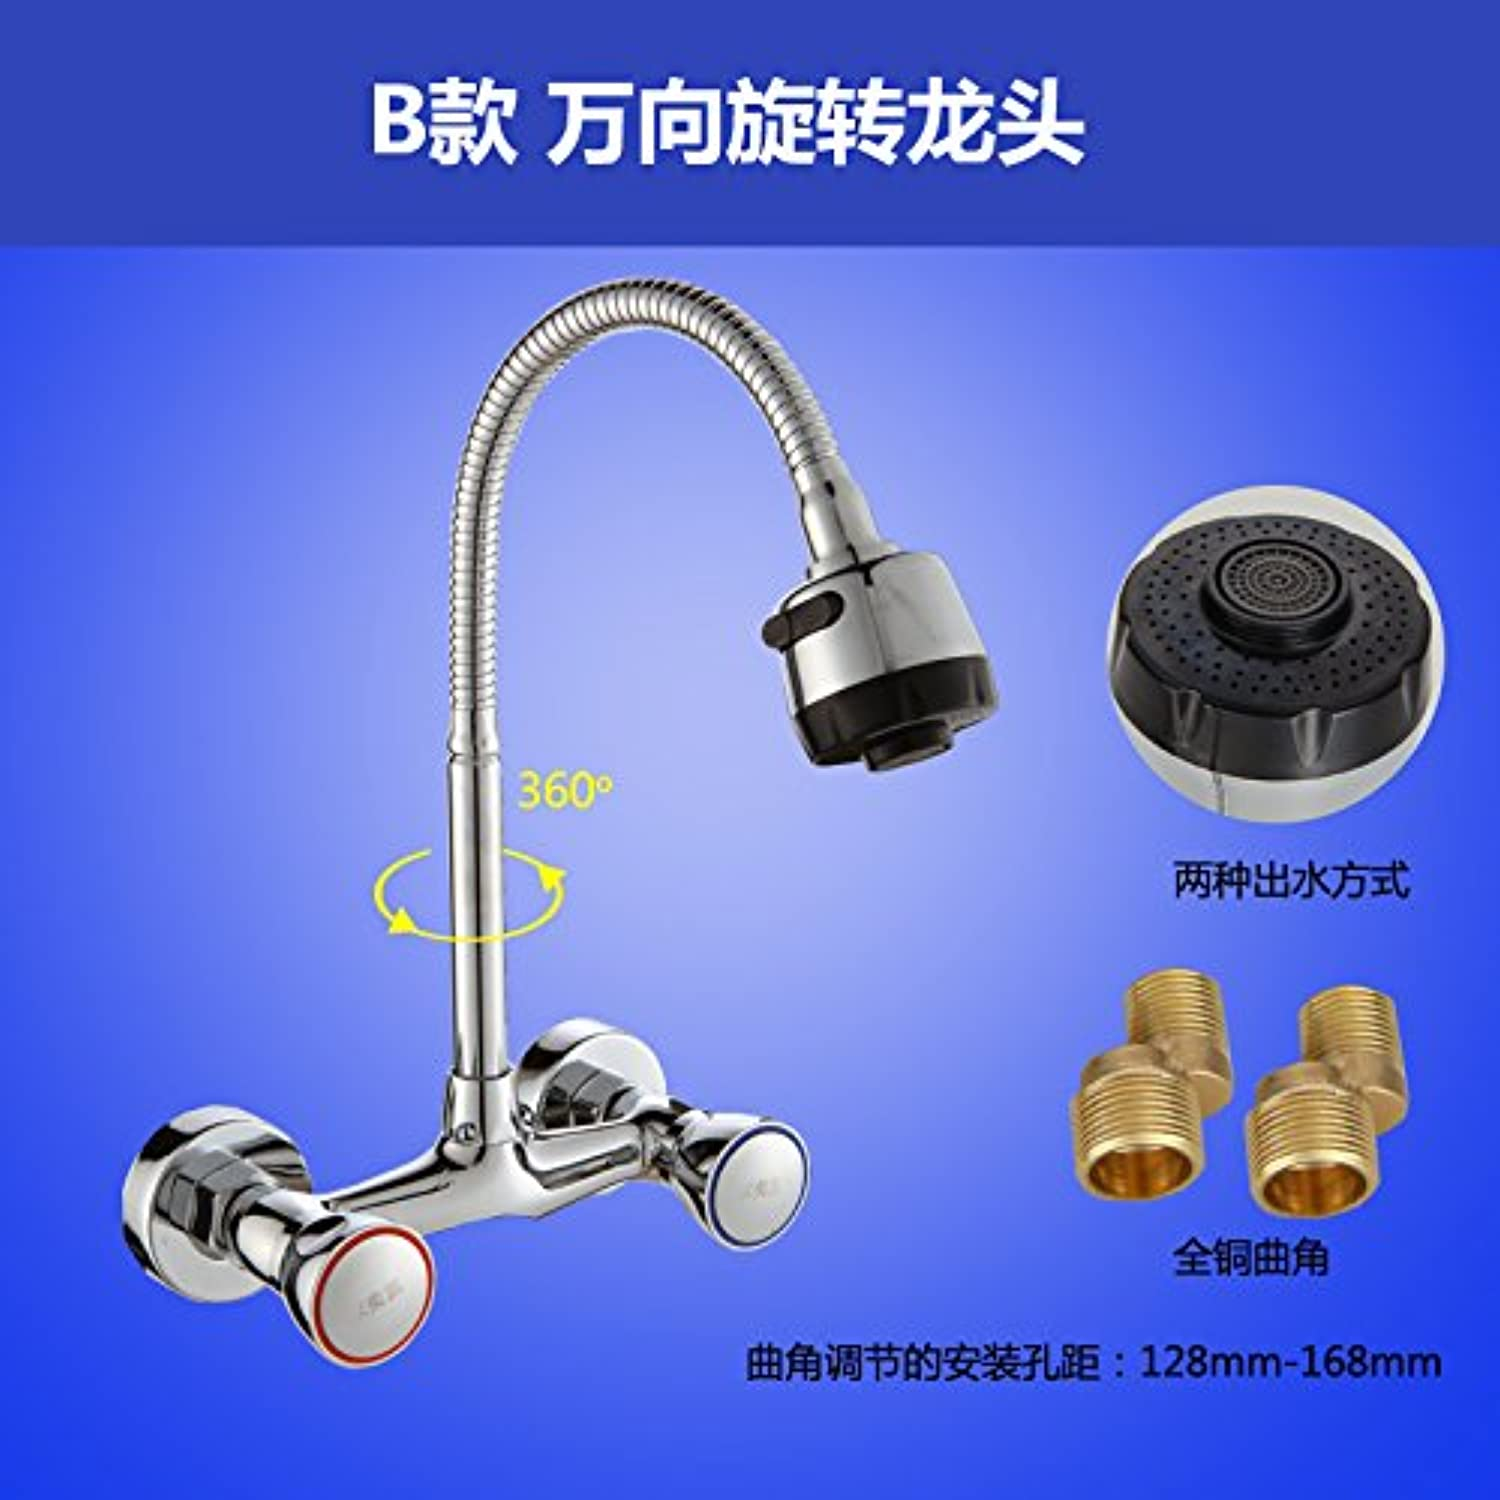 JWLT Kitchen wall mounted faucet, all copper hot and cold balcony mop pool basin sink double double hole concealed water mixing valve,B wall mounted universal redating faucet (8089)